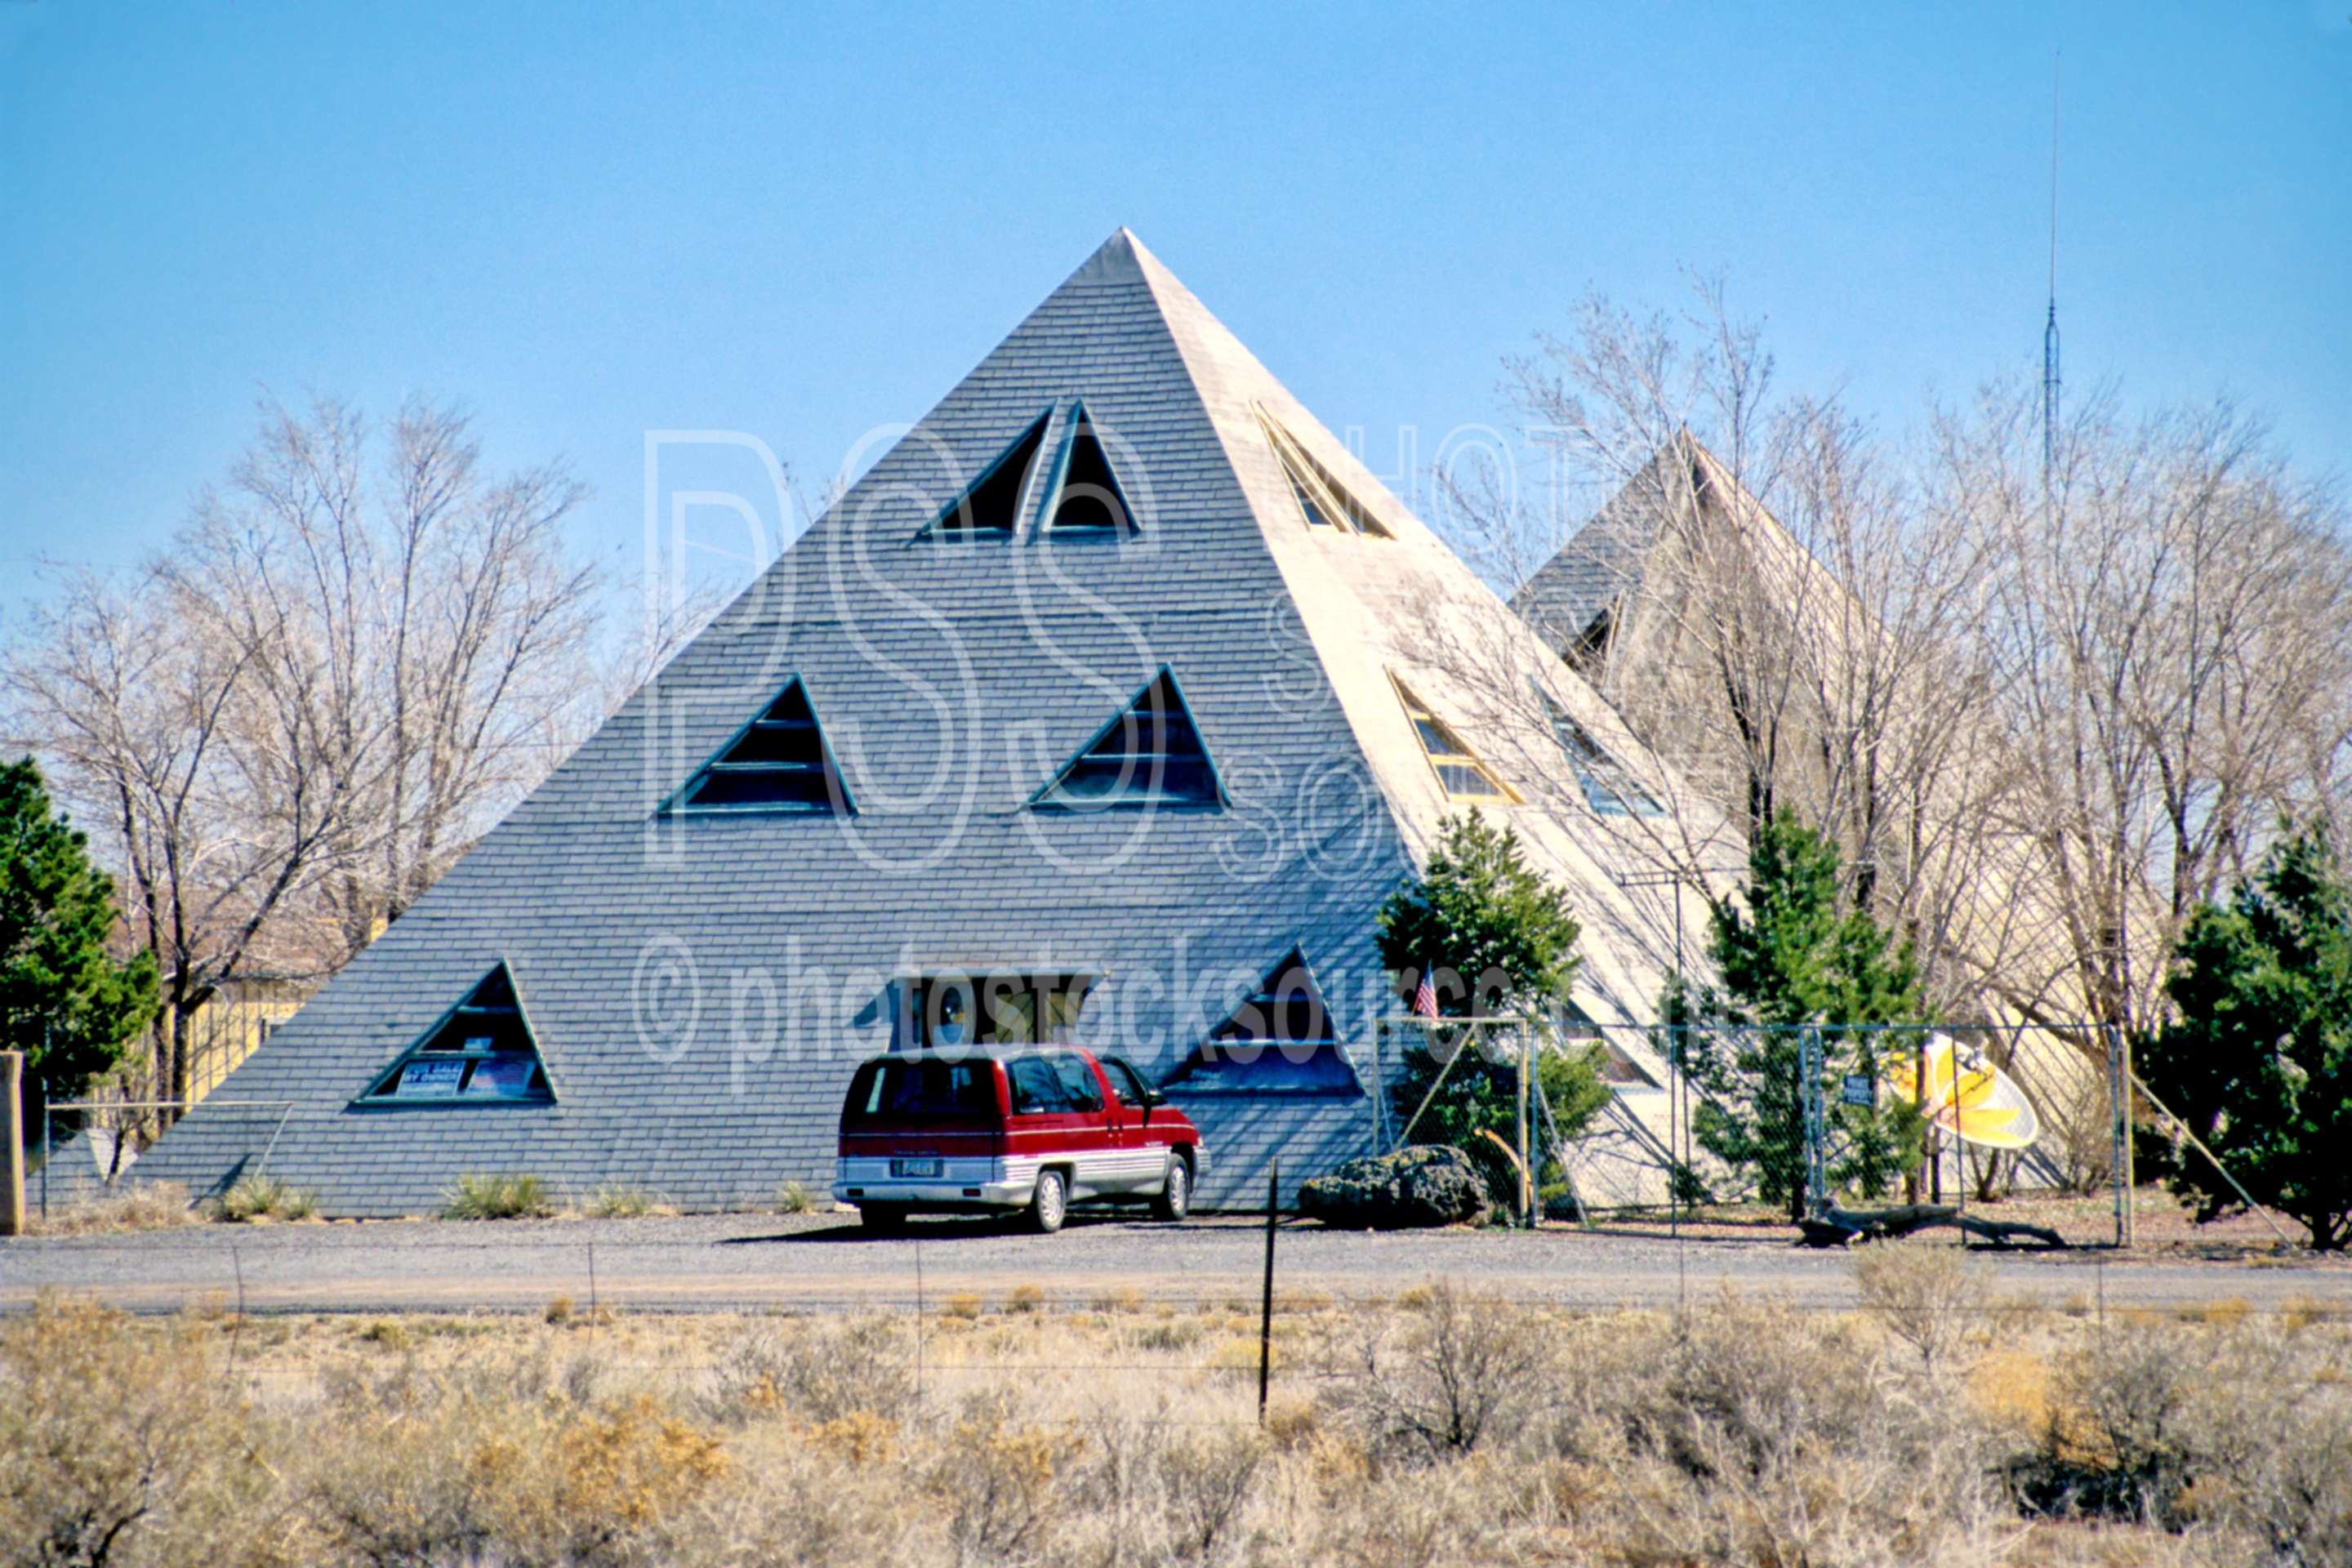 Photo Of Pyramid House By Photo Stock Source Building